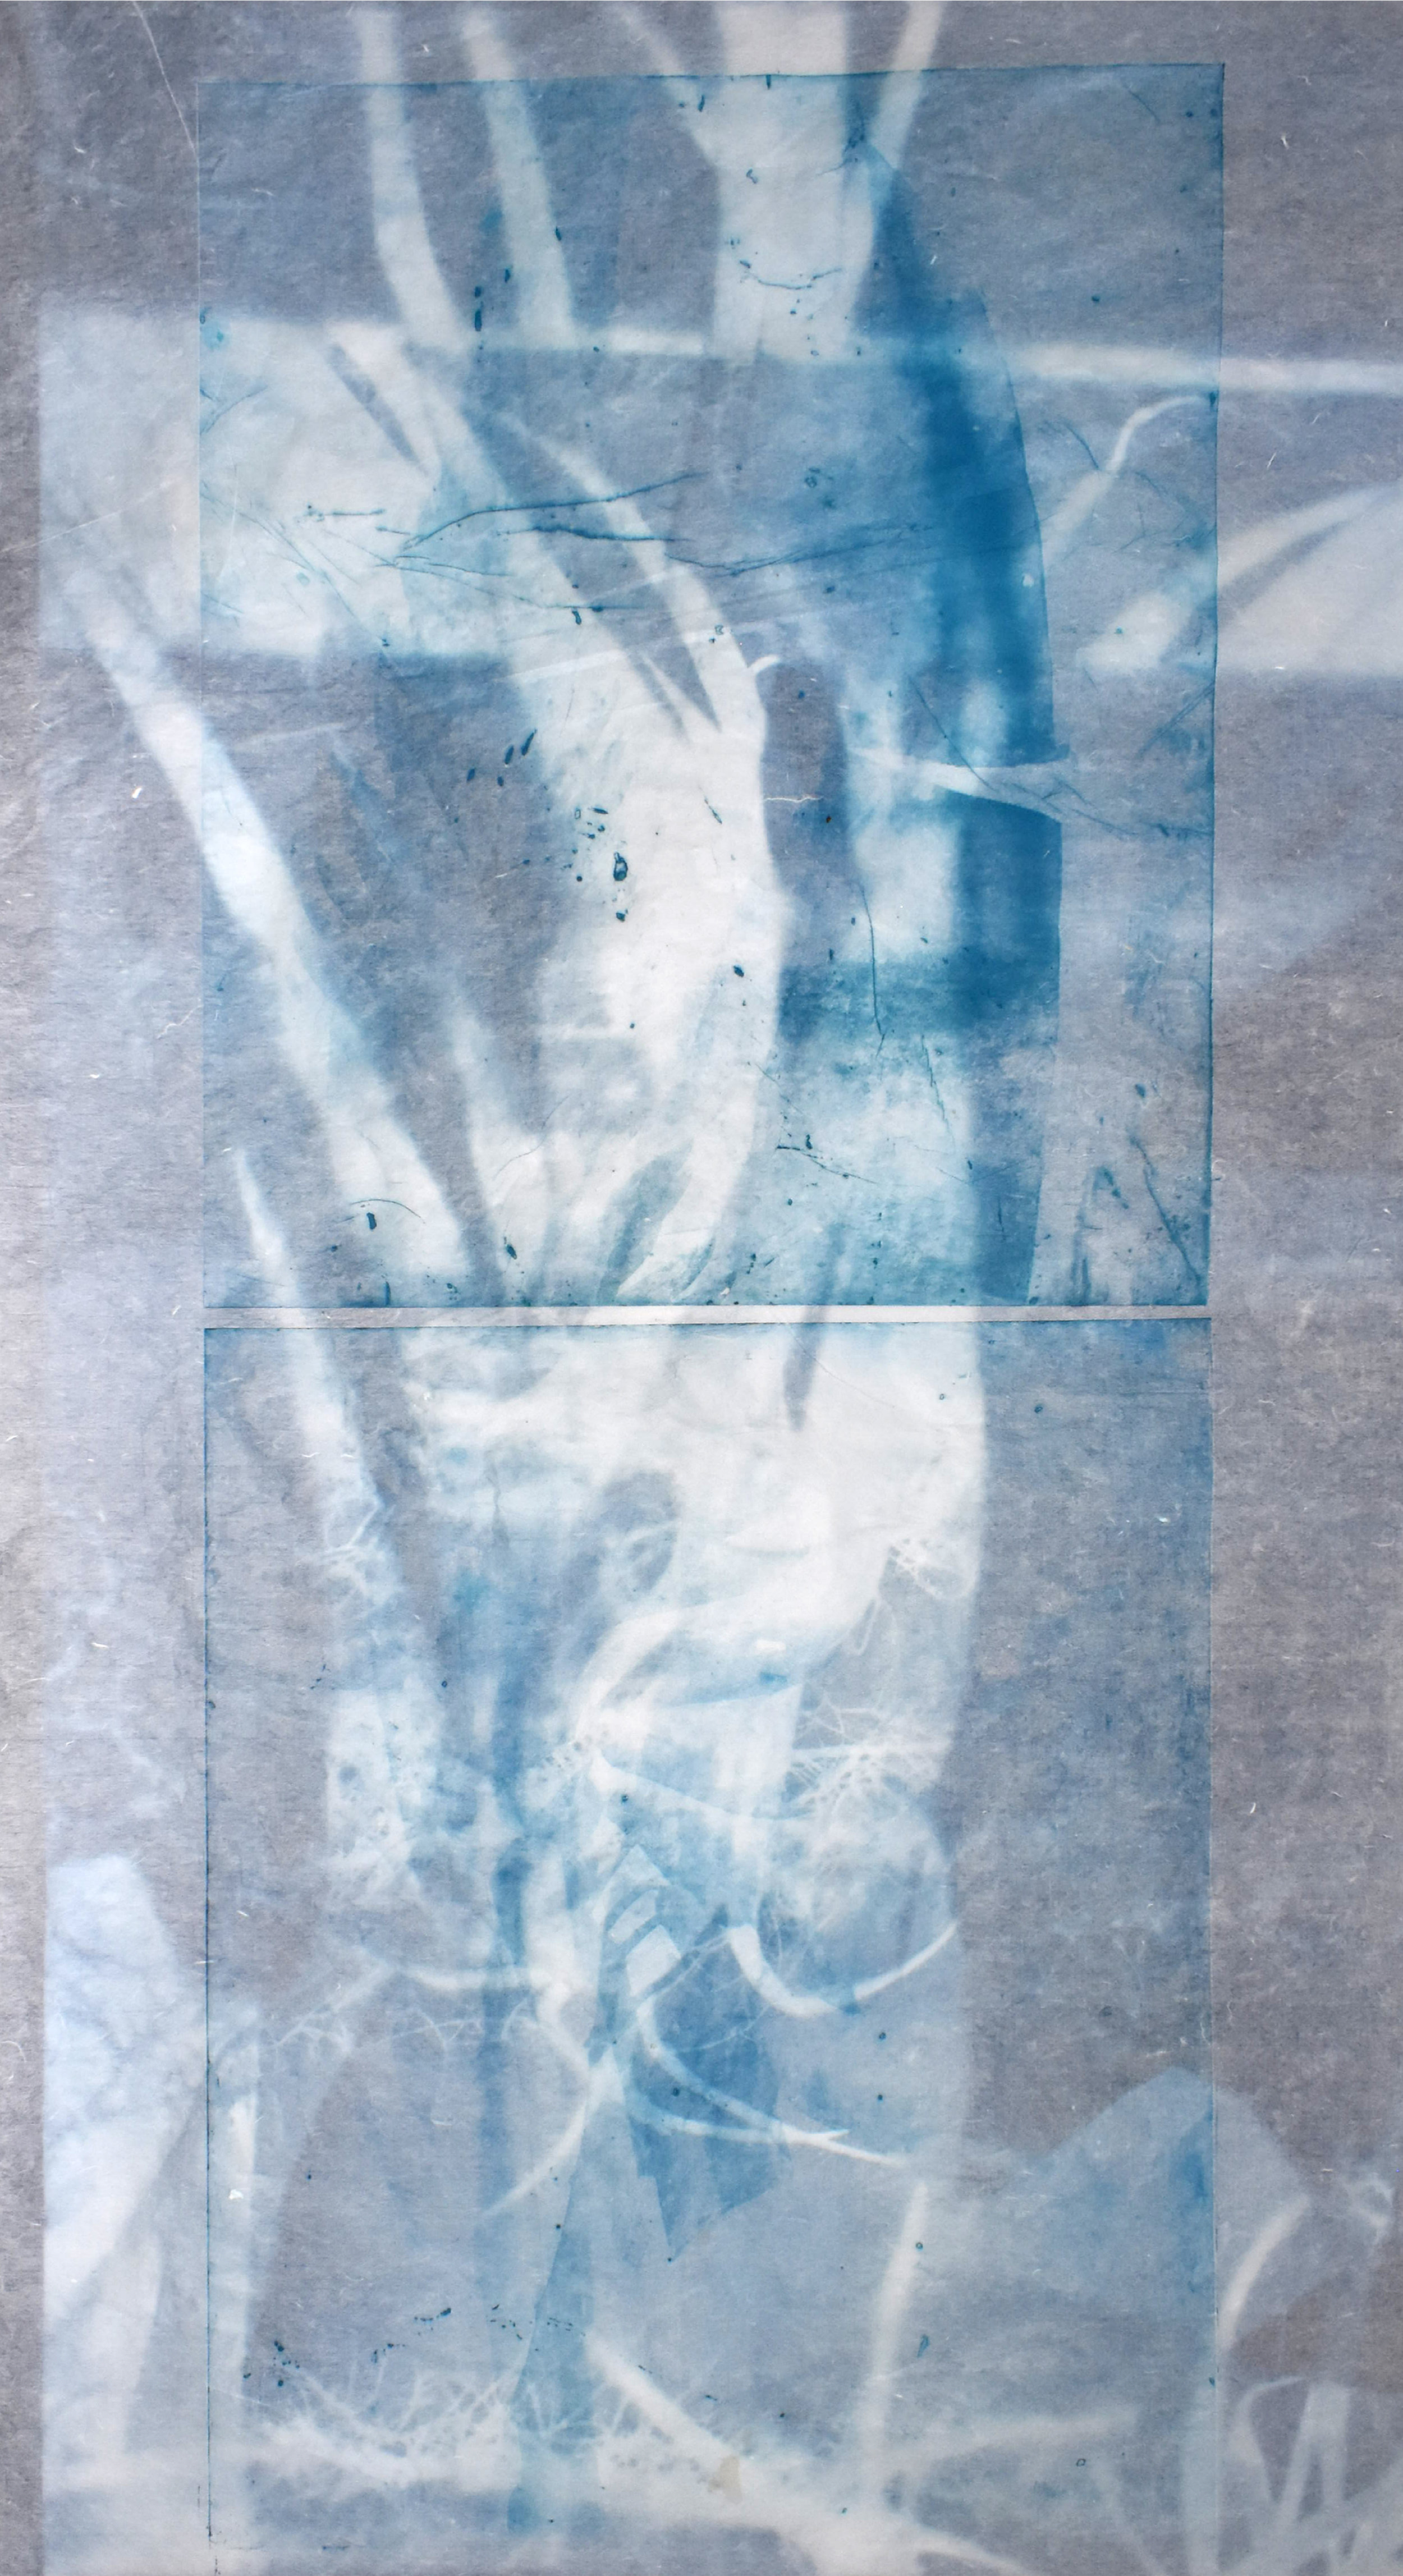 Superposition of  Interlaced (cyan), No. 2  and  Transparent Growth,  2019 (photopolymer print on Korean semi-transparent paper, superposing macroscopic images of banana leaves and other plants (taken at the greenhouses of Versailles-Chèvreloup, France).